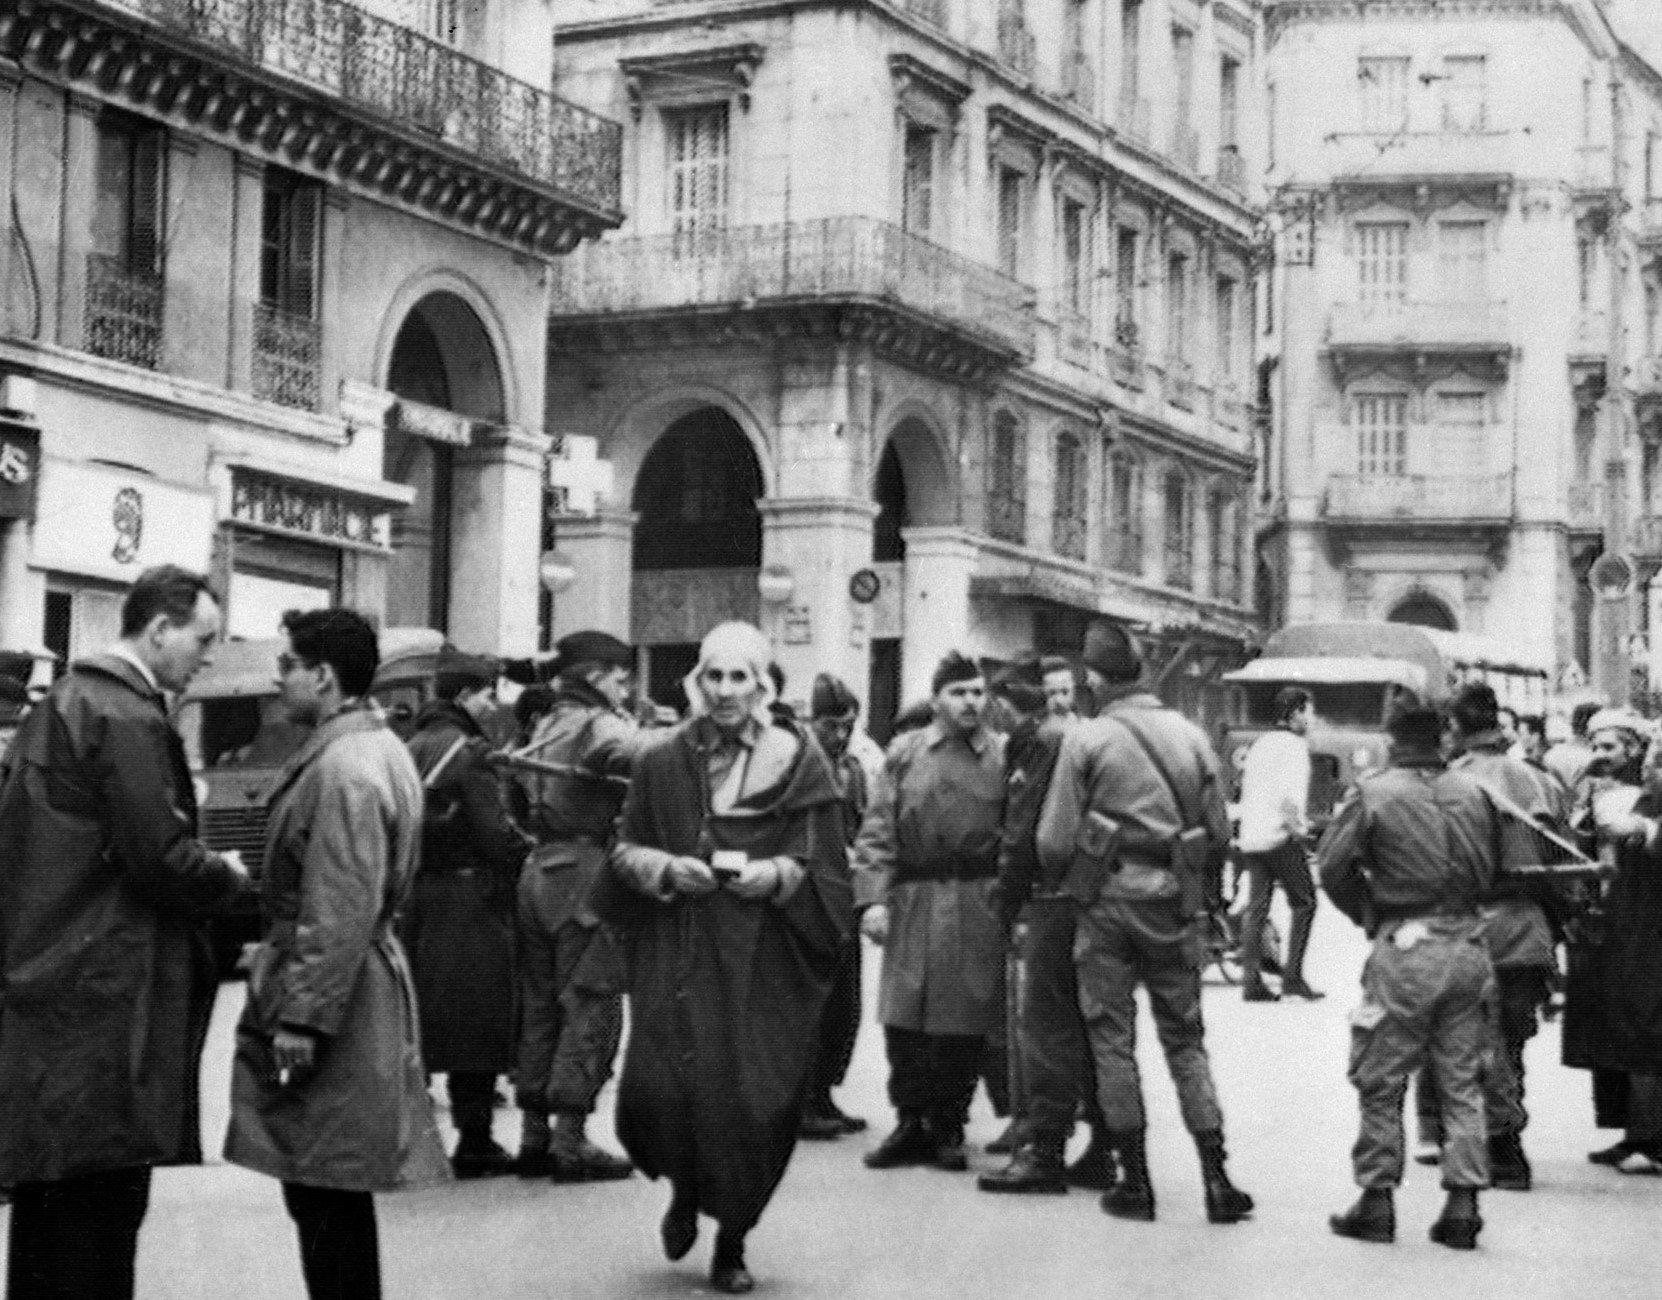 French Soldiers check the identity of Muslims at a check point on 12 December, 1960 in Algeria a few days before the UN statement acknowledging the right to the self-determination for Algerians.